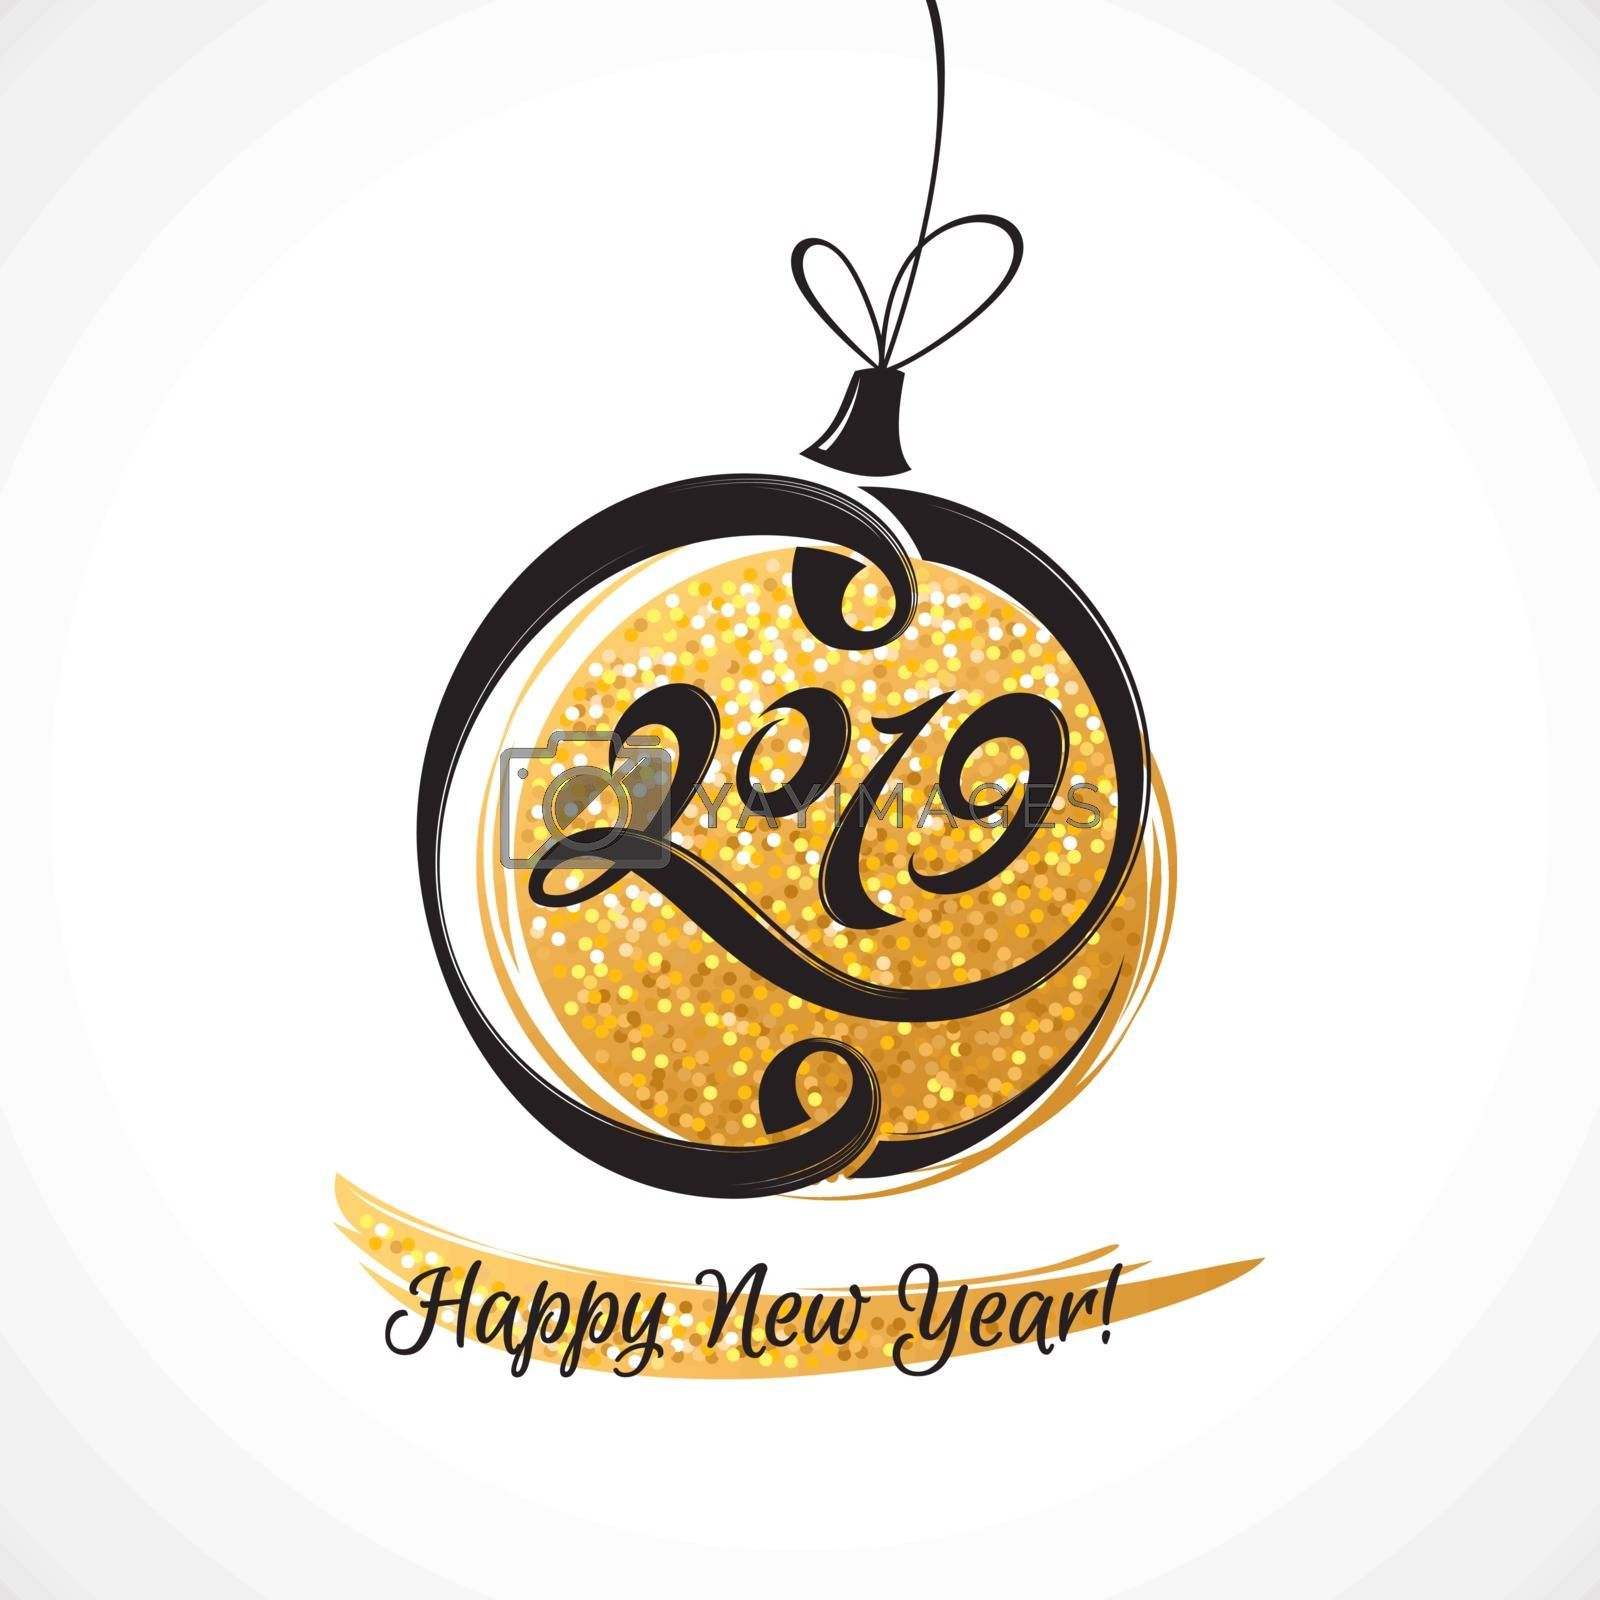 2019 New Year greeting card with stylized Christmas ball. Vector illustration